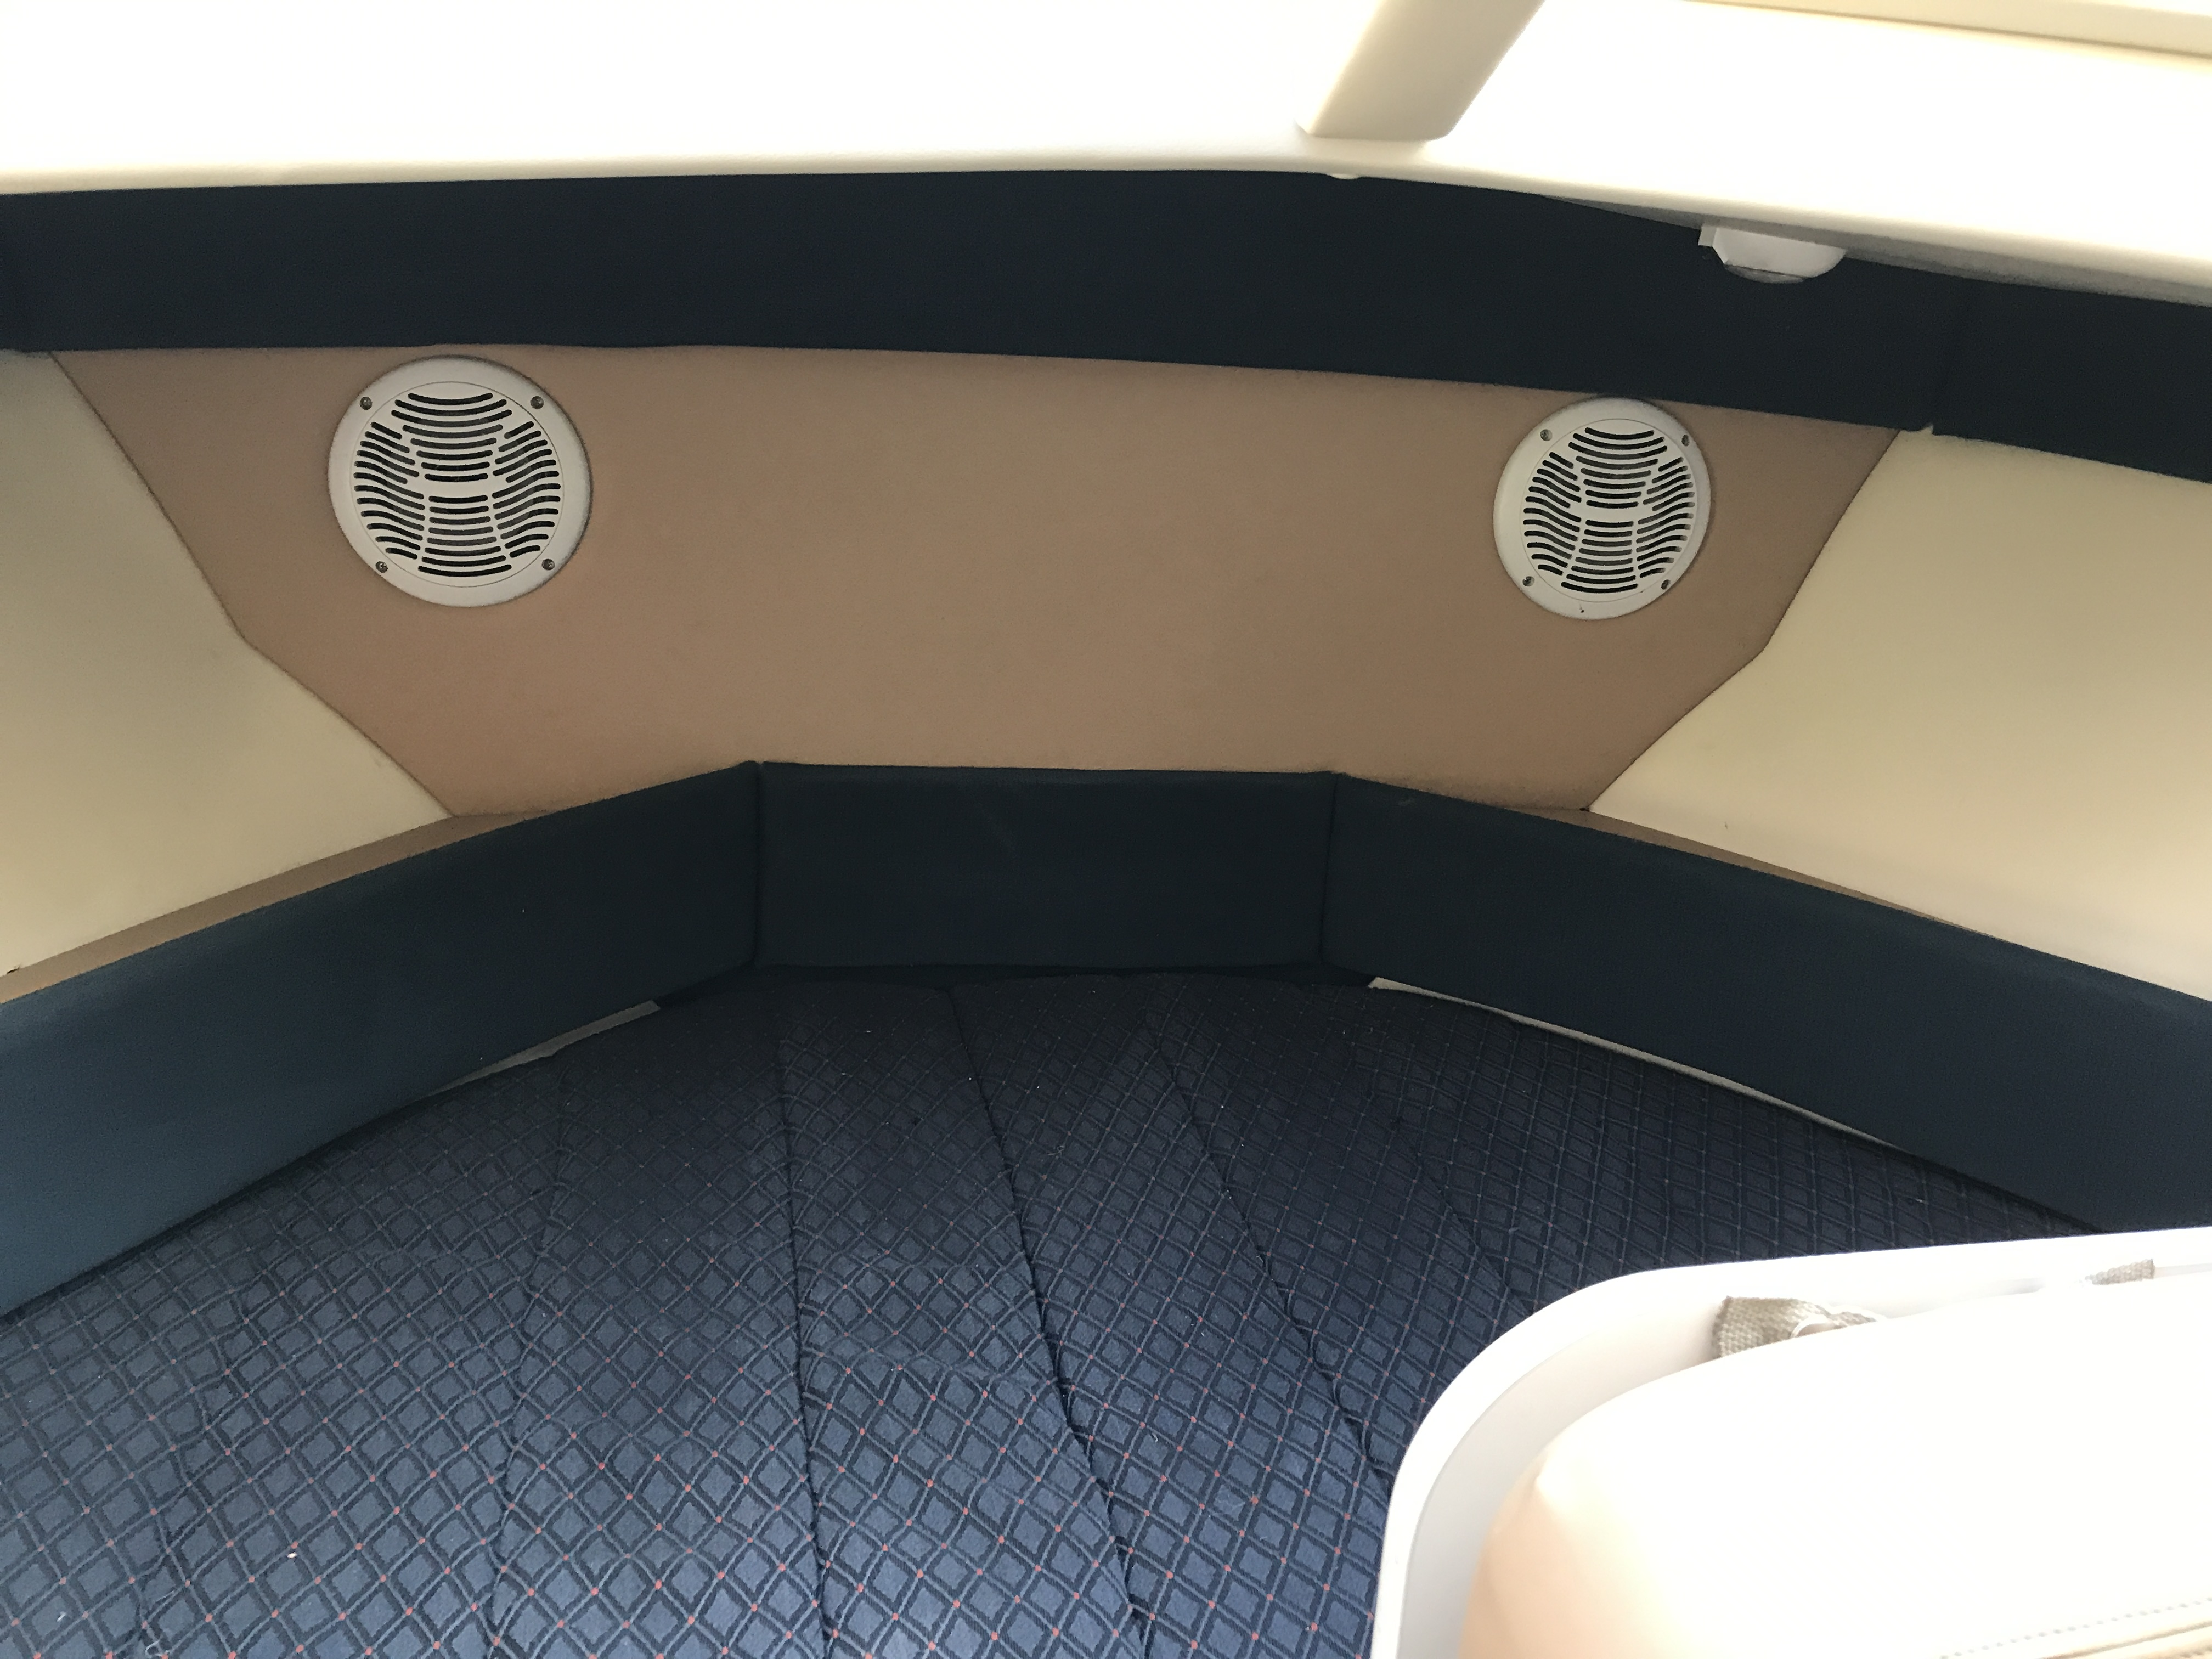 Bayliner Discovery 246 EC - wide berth and speakers